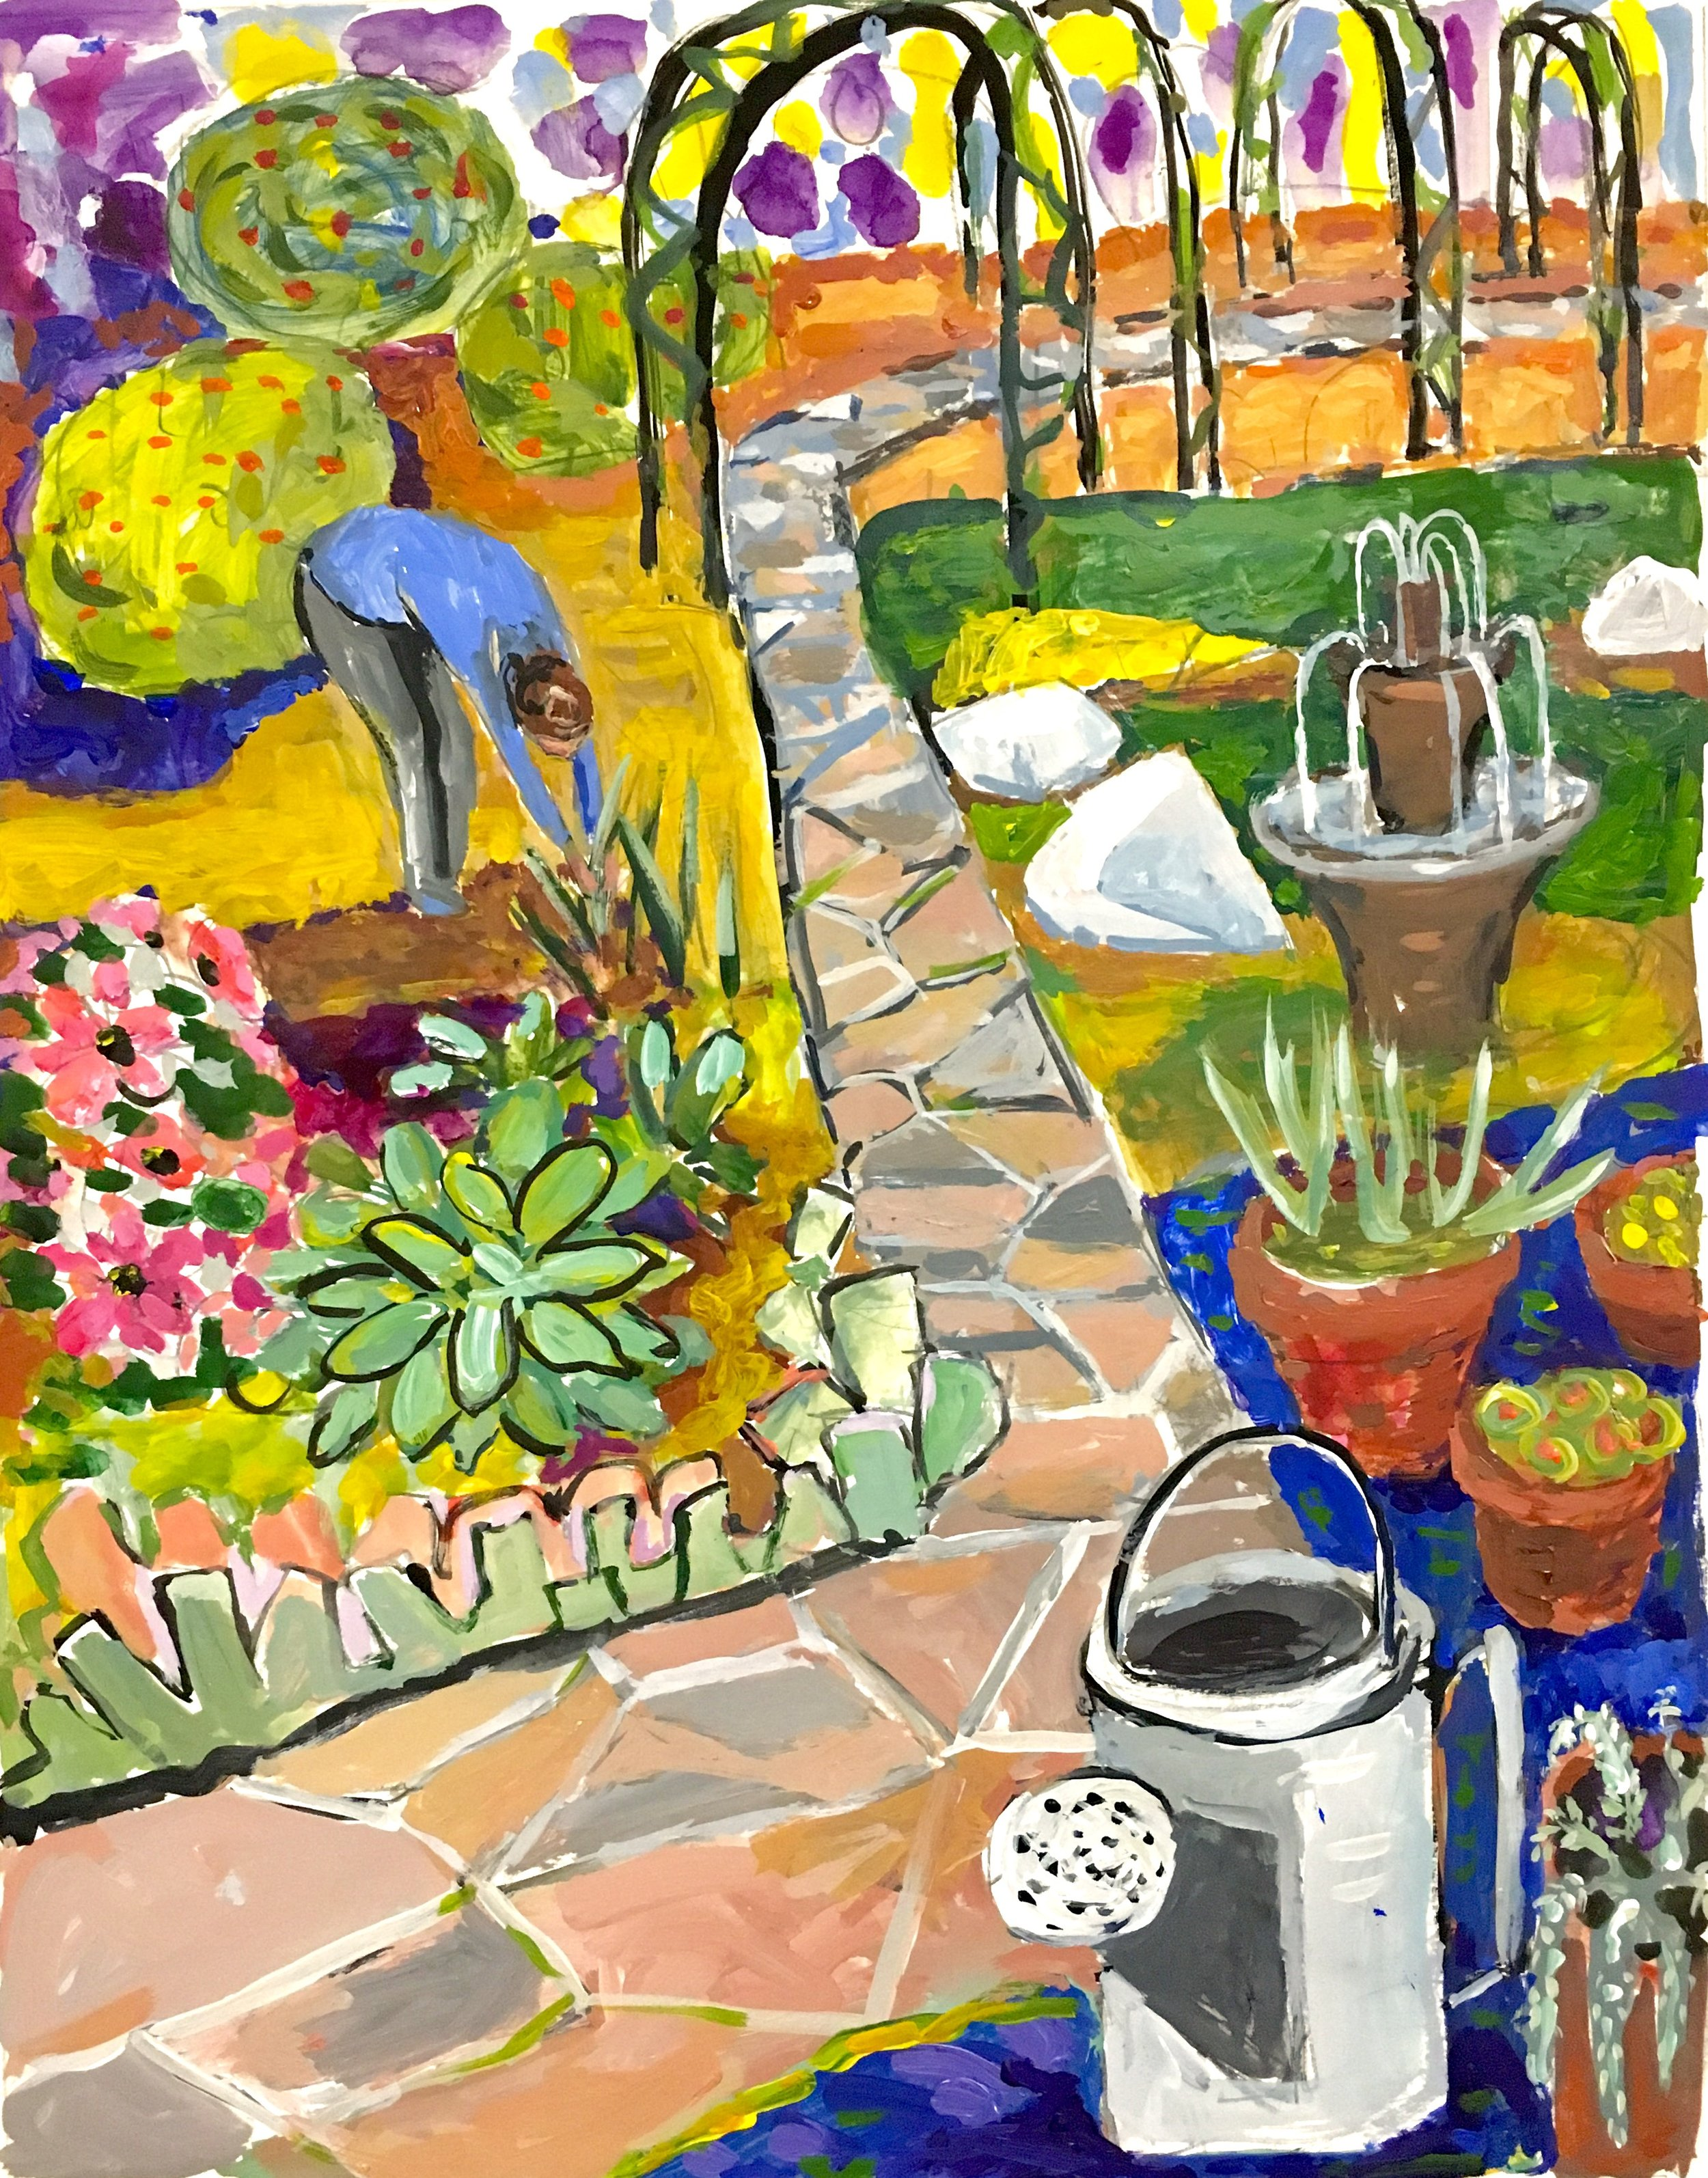 Garden-with-Watering-Can.jpg